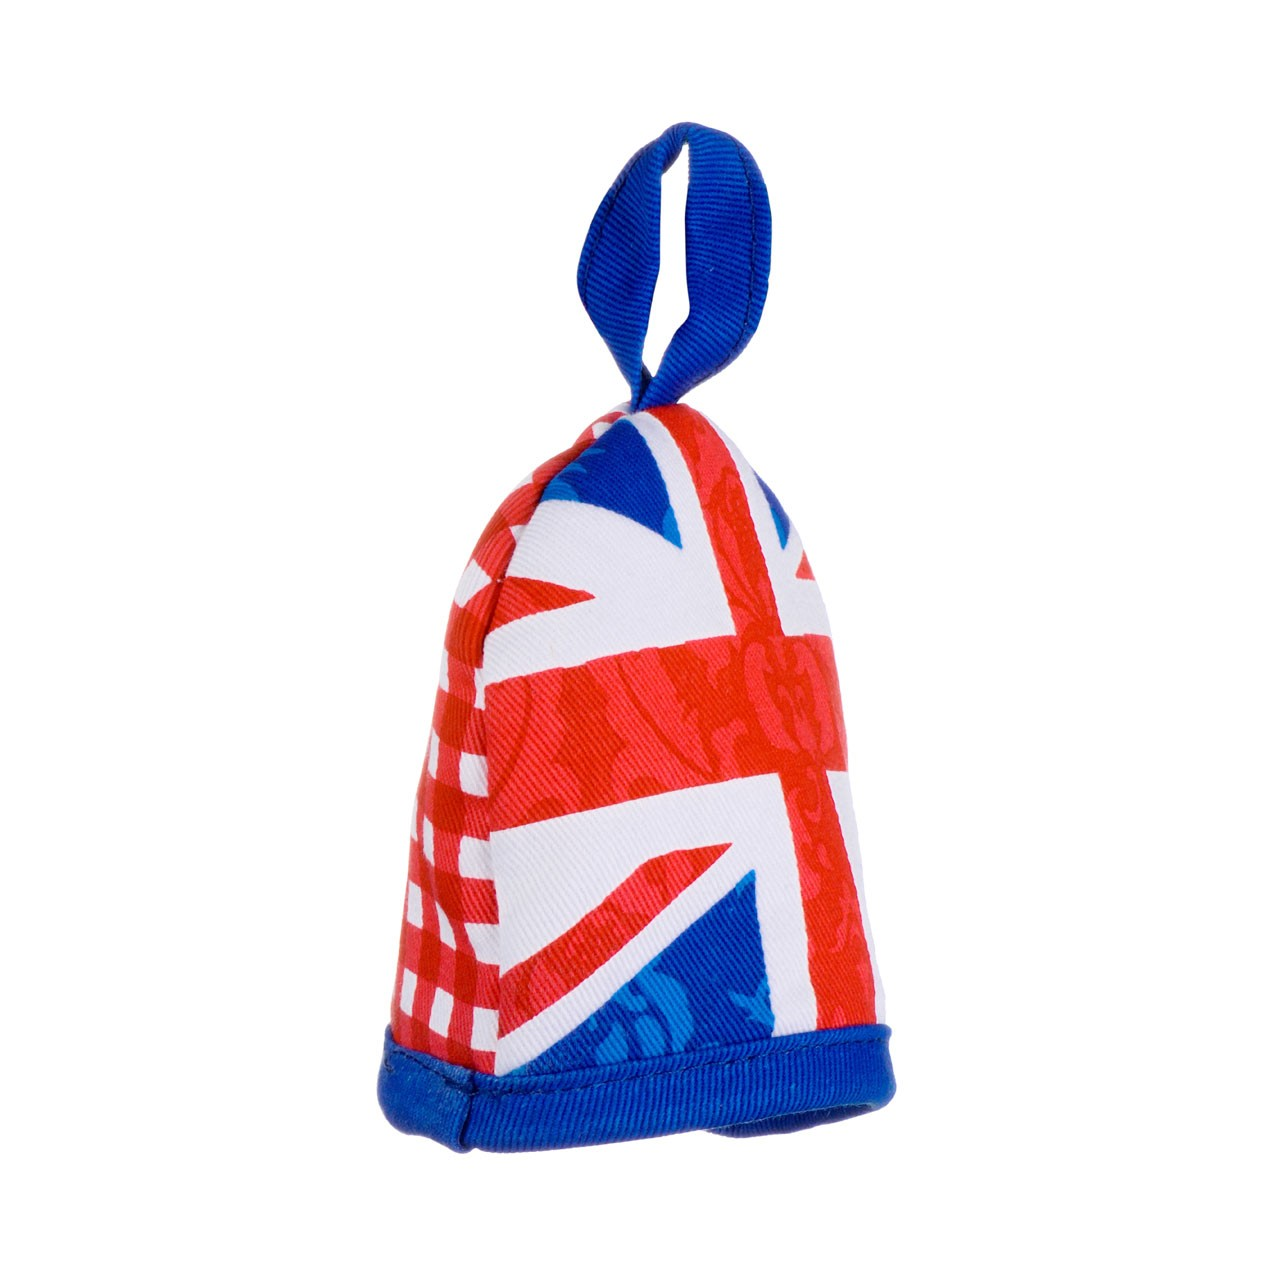 I Love UK Egg Cosy, 100% Cotton